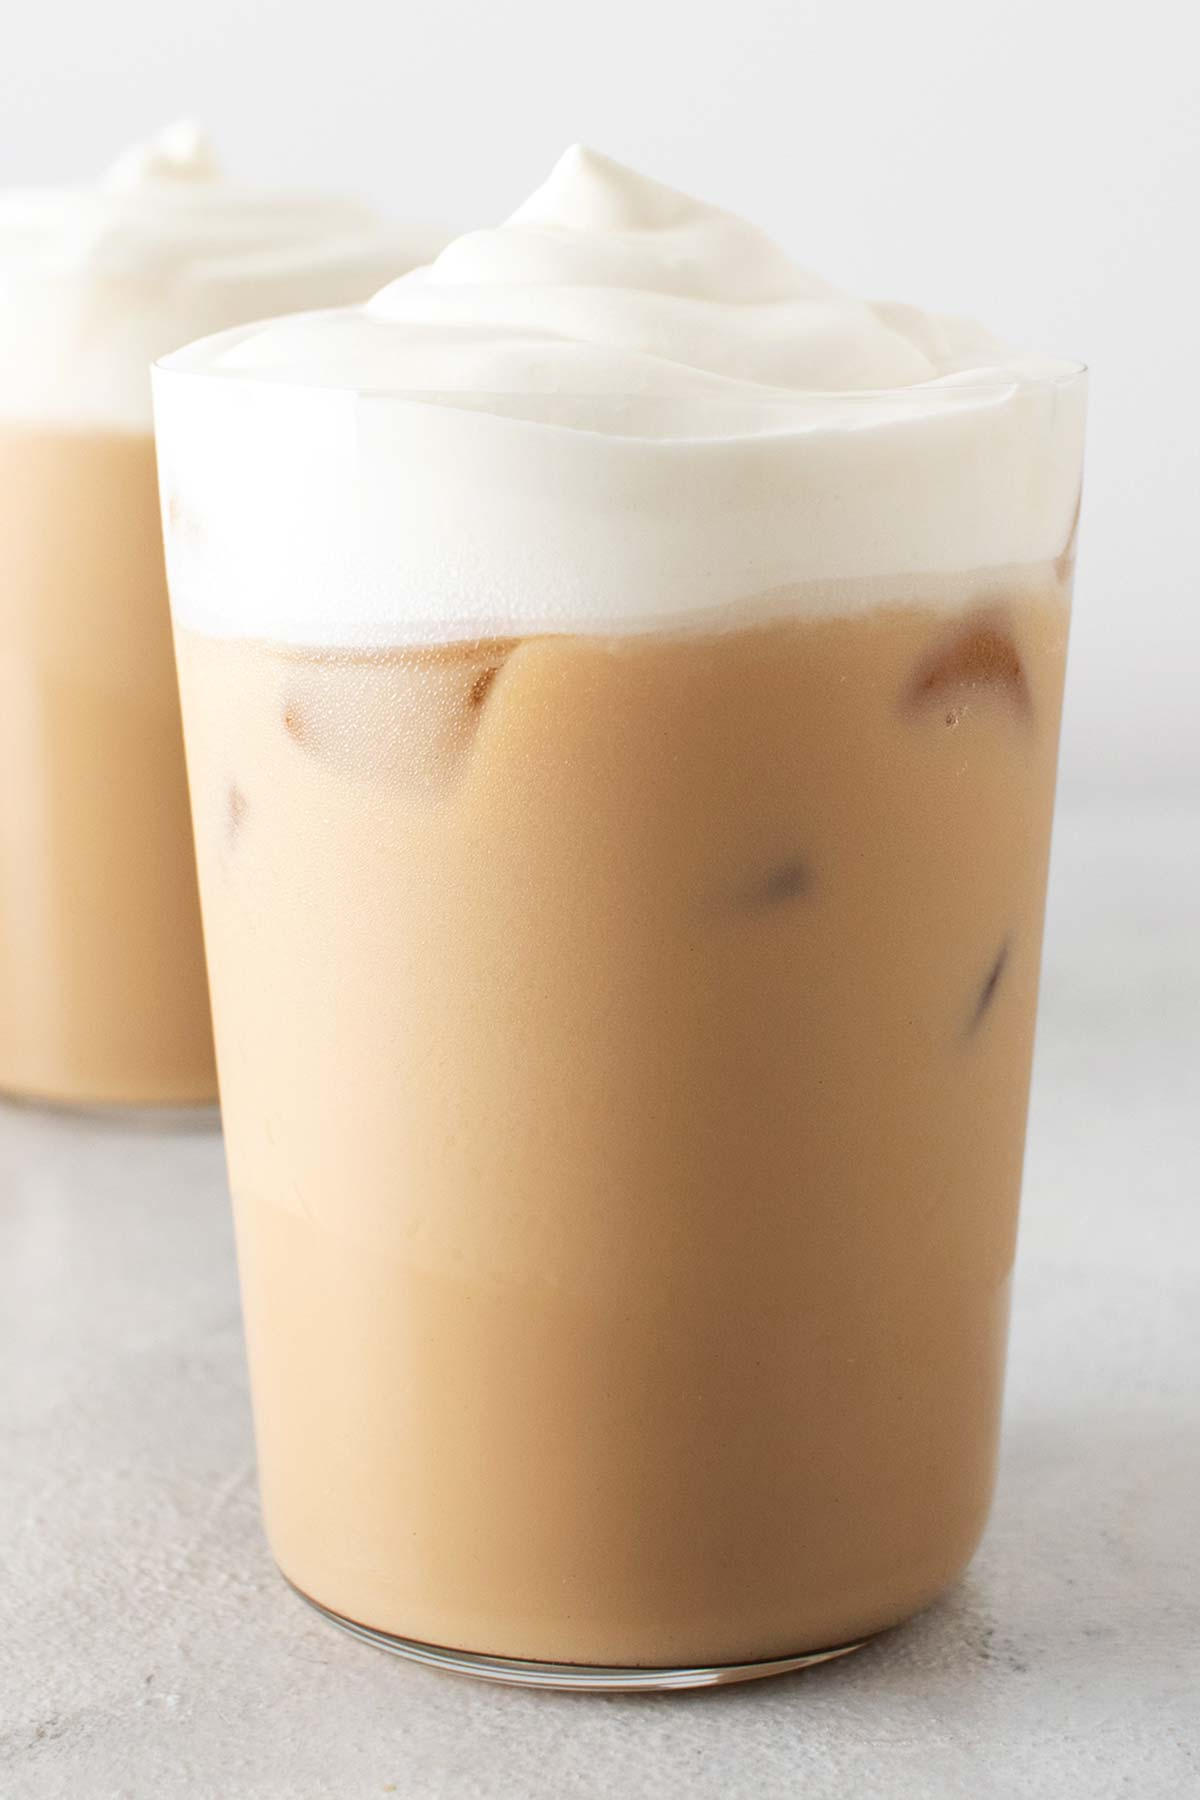 Iced White Chocolate Mocha drinks in cups with whipped cream.